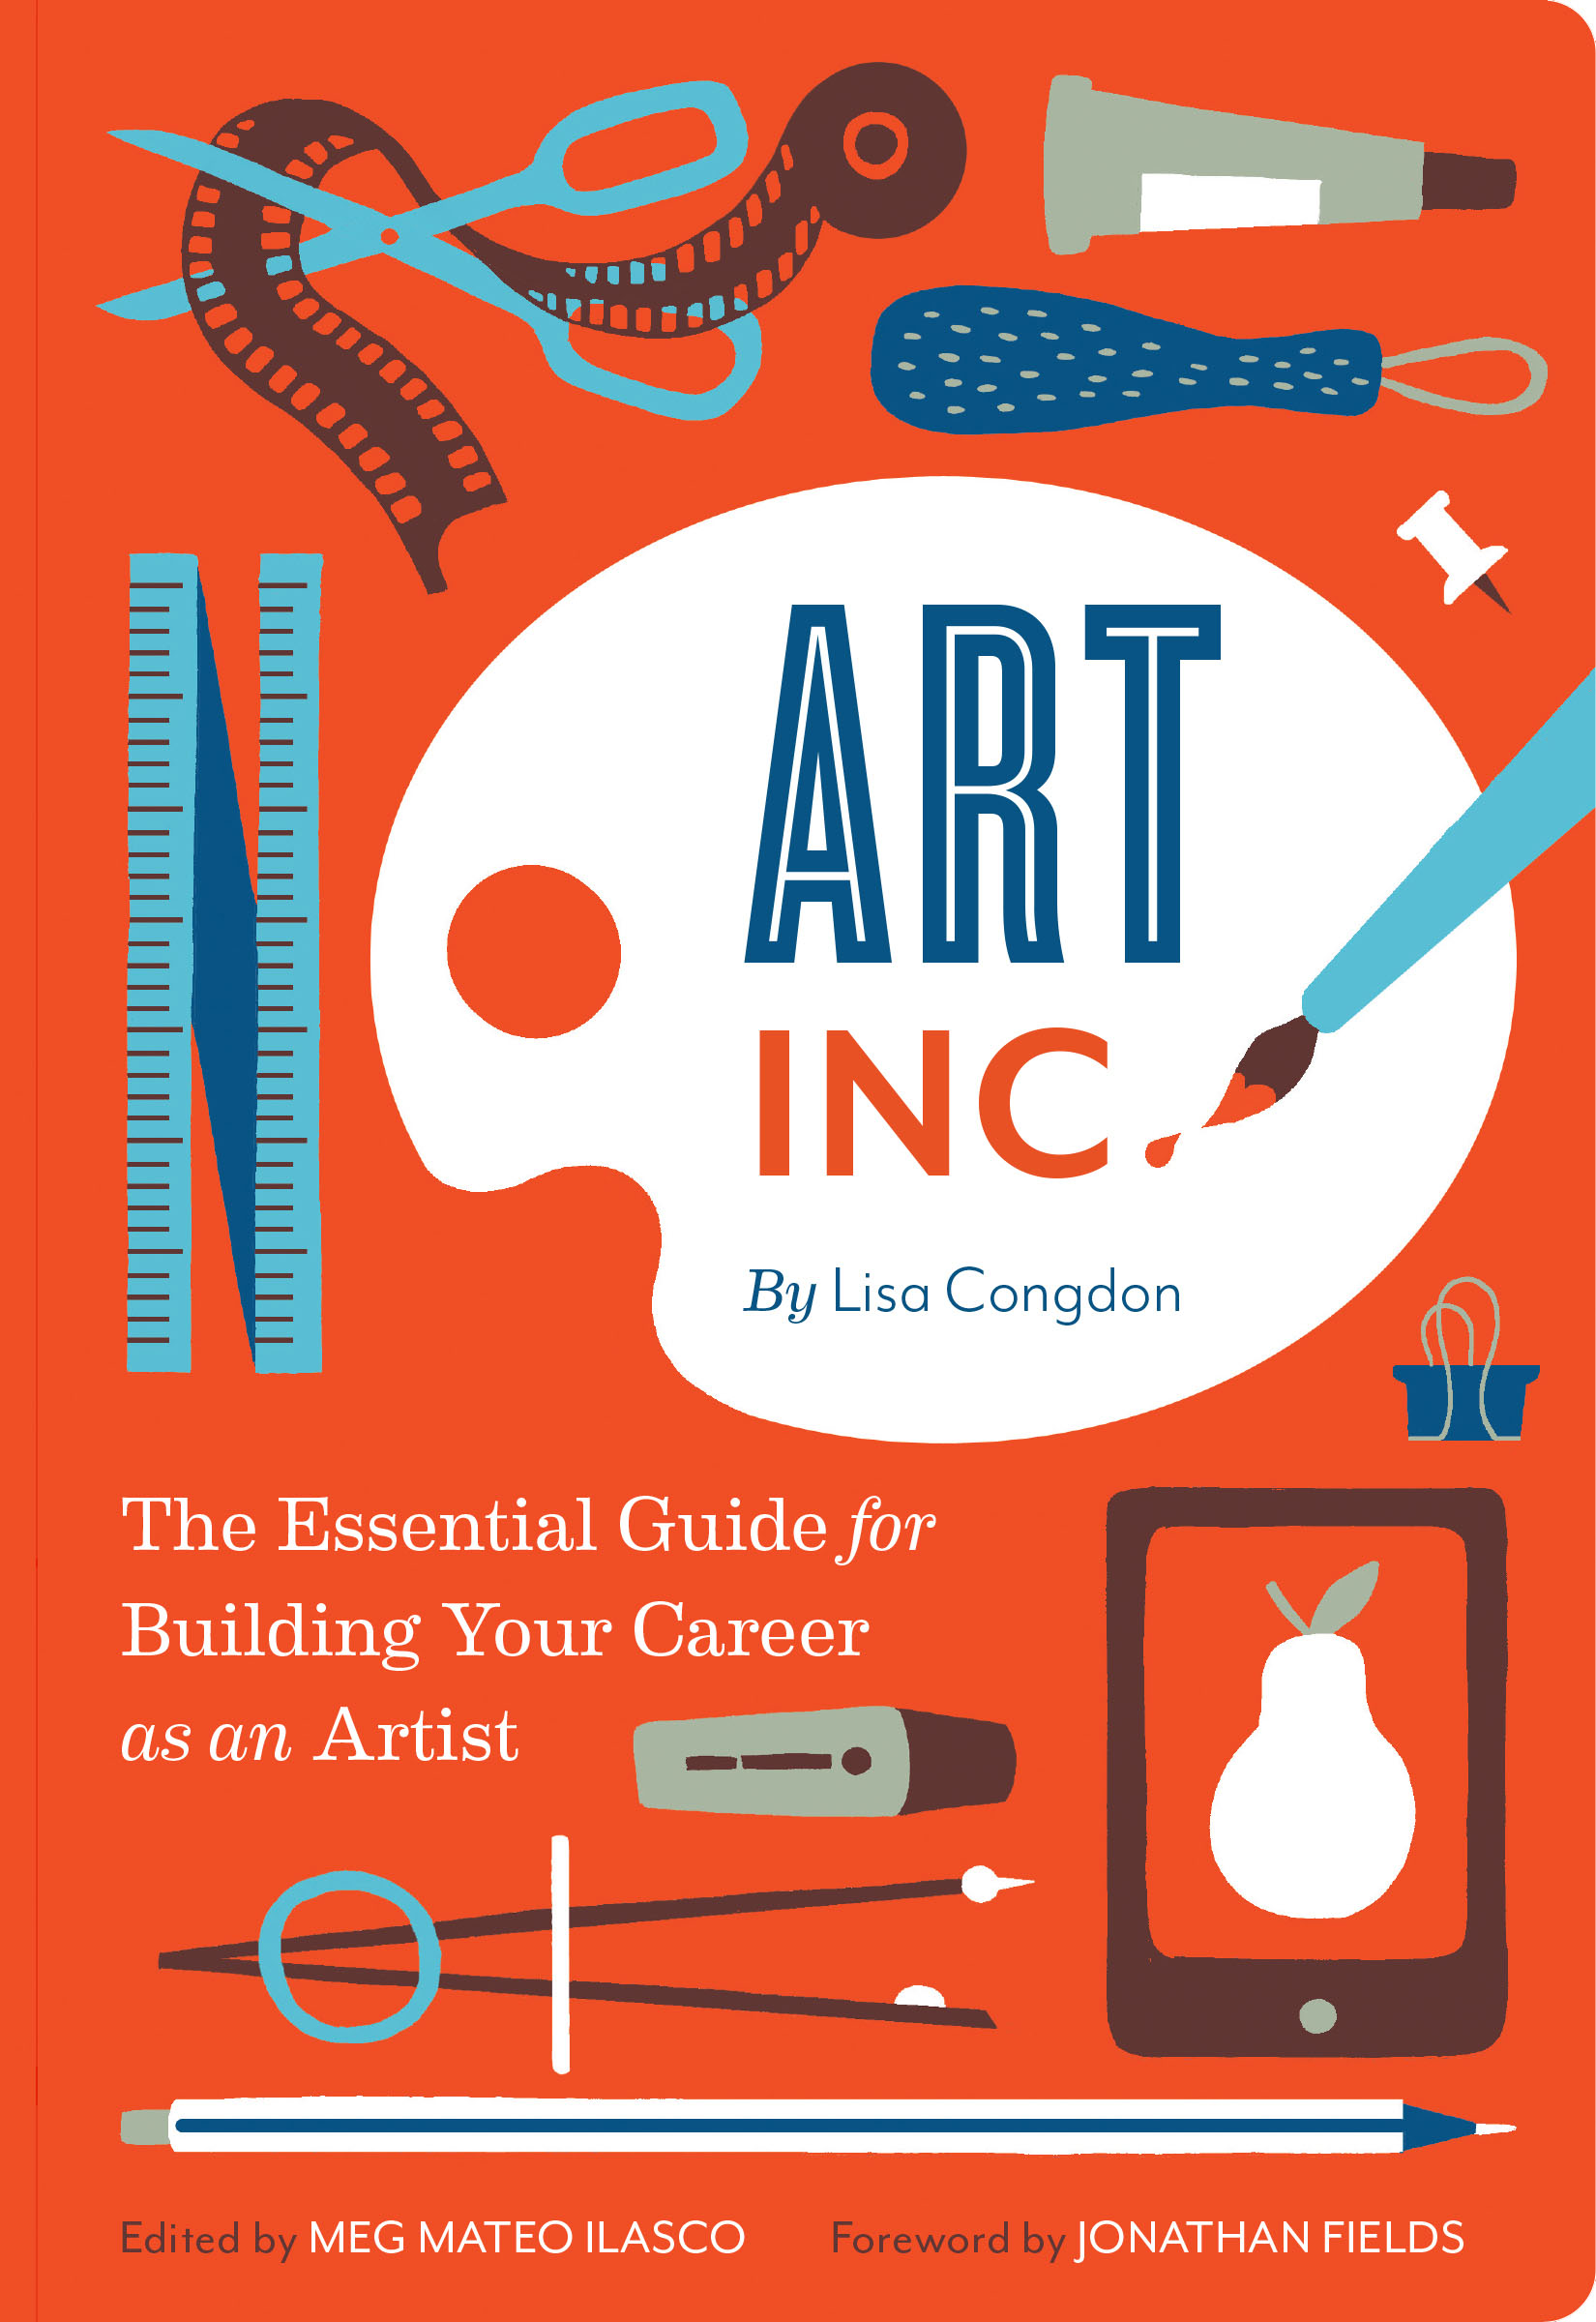 NYC Launch: Art, Inc. by Lisa Congdon, with Grace Bonney